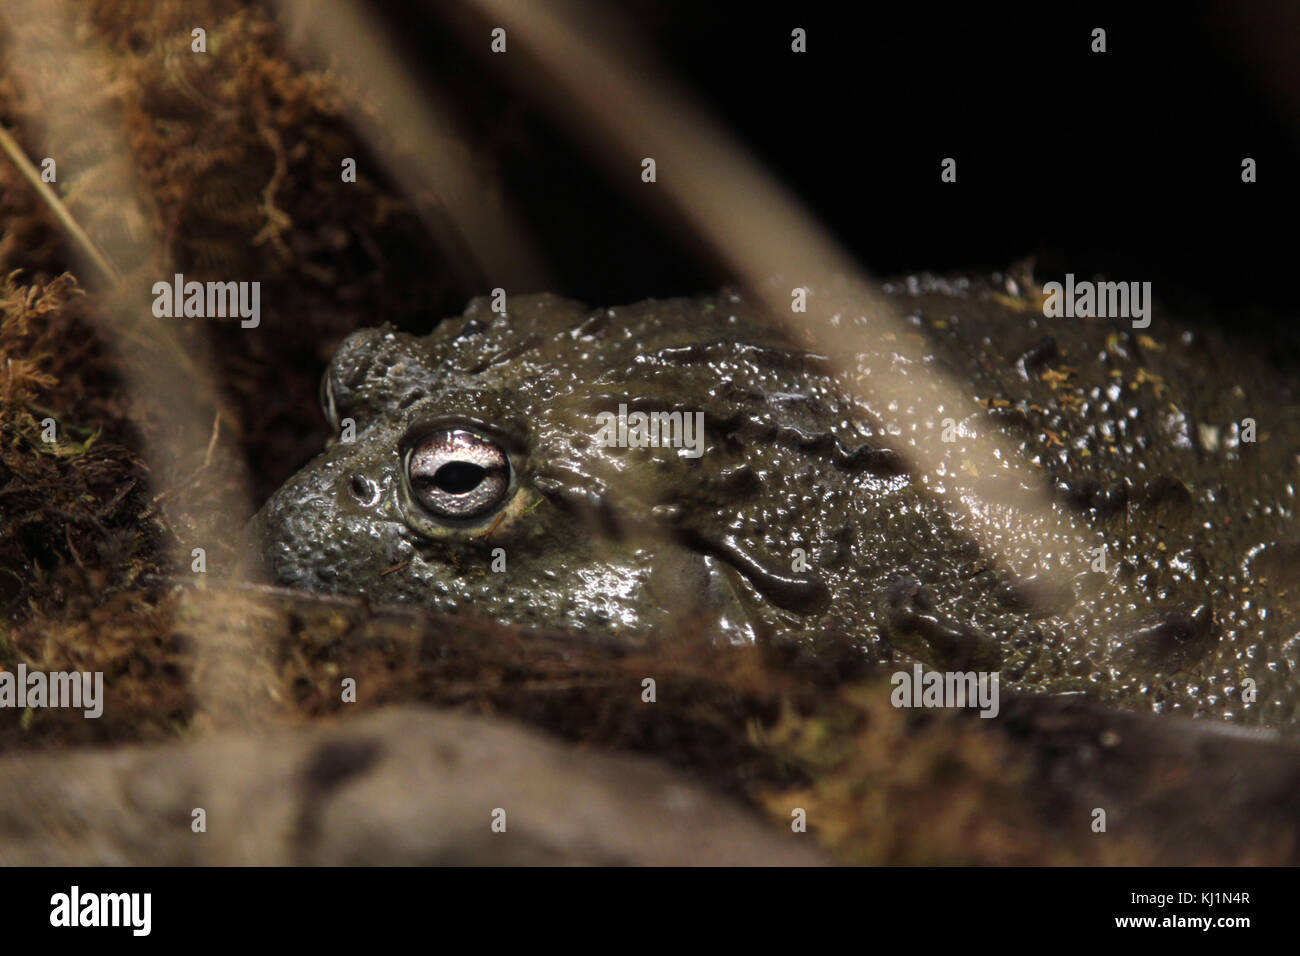 A toad sits in water - Stock Image